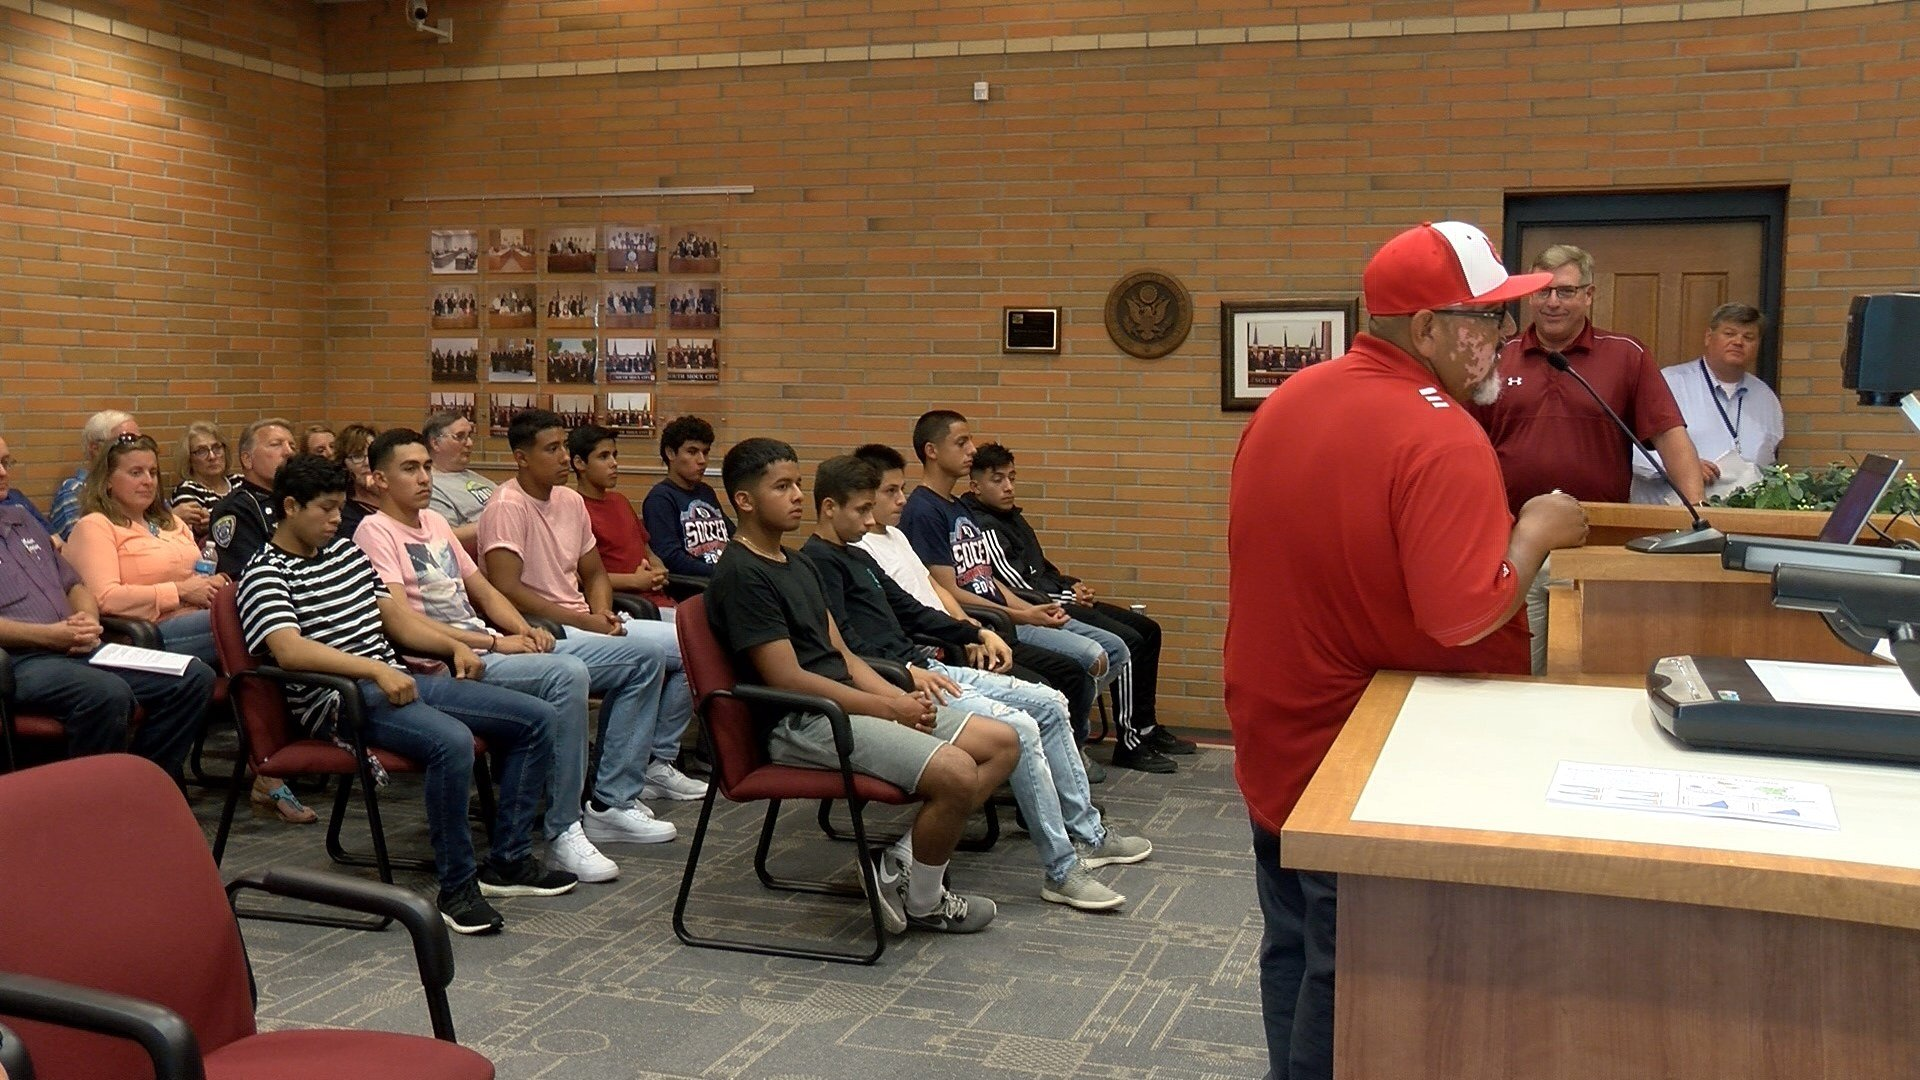 The South Sioux City boys were honored at Monday's city council meeting.